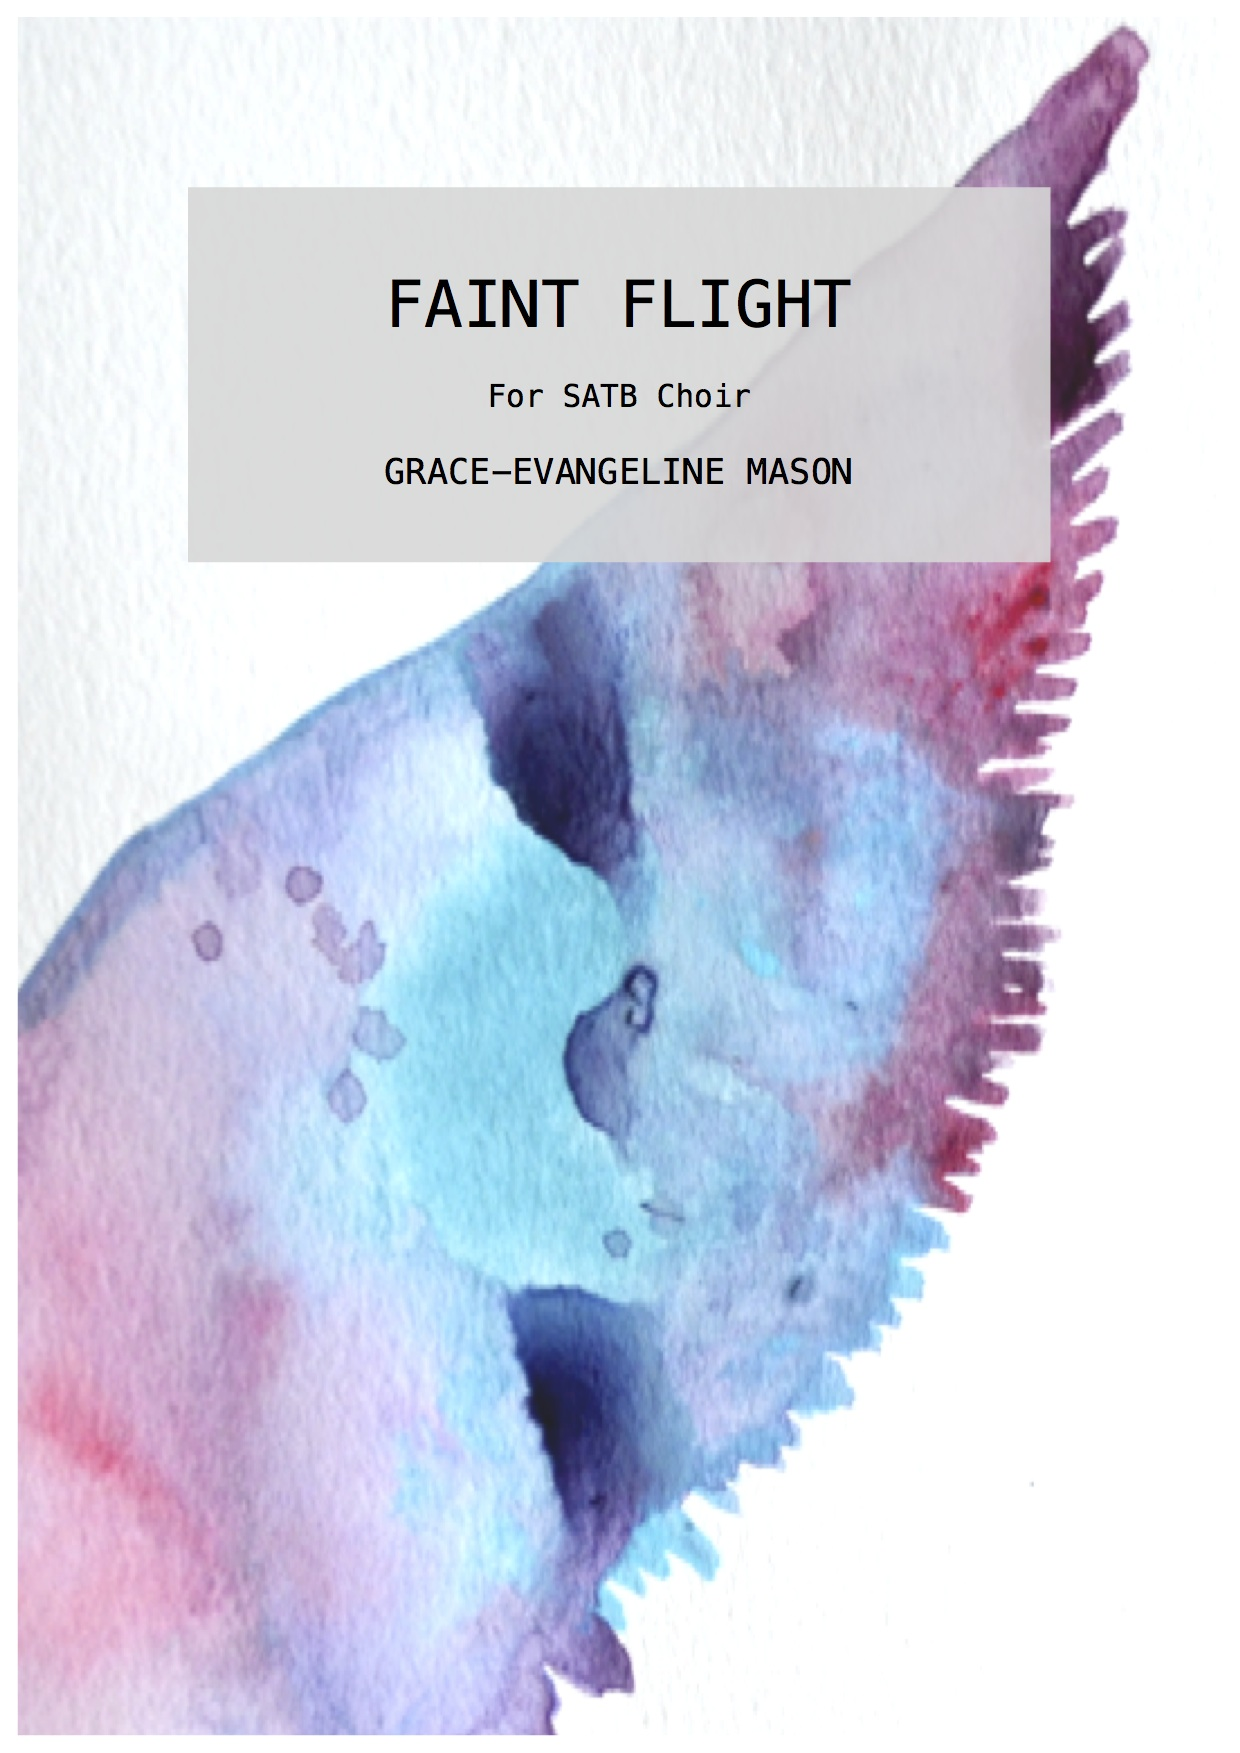 'Faint Flight' (2014) - for SATB ChoirApprox. Duration: 4'Written for the BBC Singers and conductor, Paul BroughUS Premiere by Philharmonia Baroque Orchestra and Chorale, Bing Concert Hall, PBO Sessions at Stanford Live, San Francisco (07/03/19)'Faint Flight' (2014) is centered on utilising a small selection of prose from Coventry Patmore's poem, 'Faint Yet Pursuing,' which he included in his collection of poems entitled 'The Unknown Eros' in Hastings, 1890. The work aims to create a calm, yet uplifting atmosphere.©G.E.M.2014©Cover Image: 'Flight' Painting by Grace-Evangeline Mason 2014